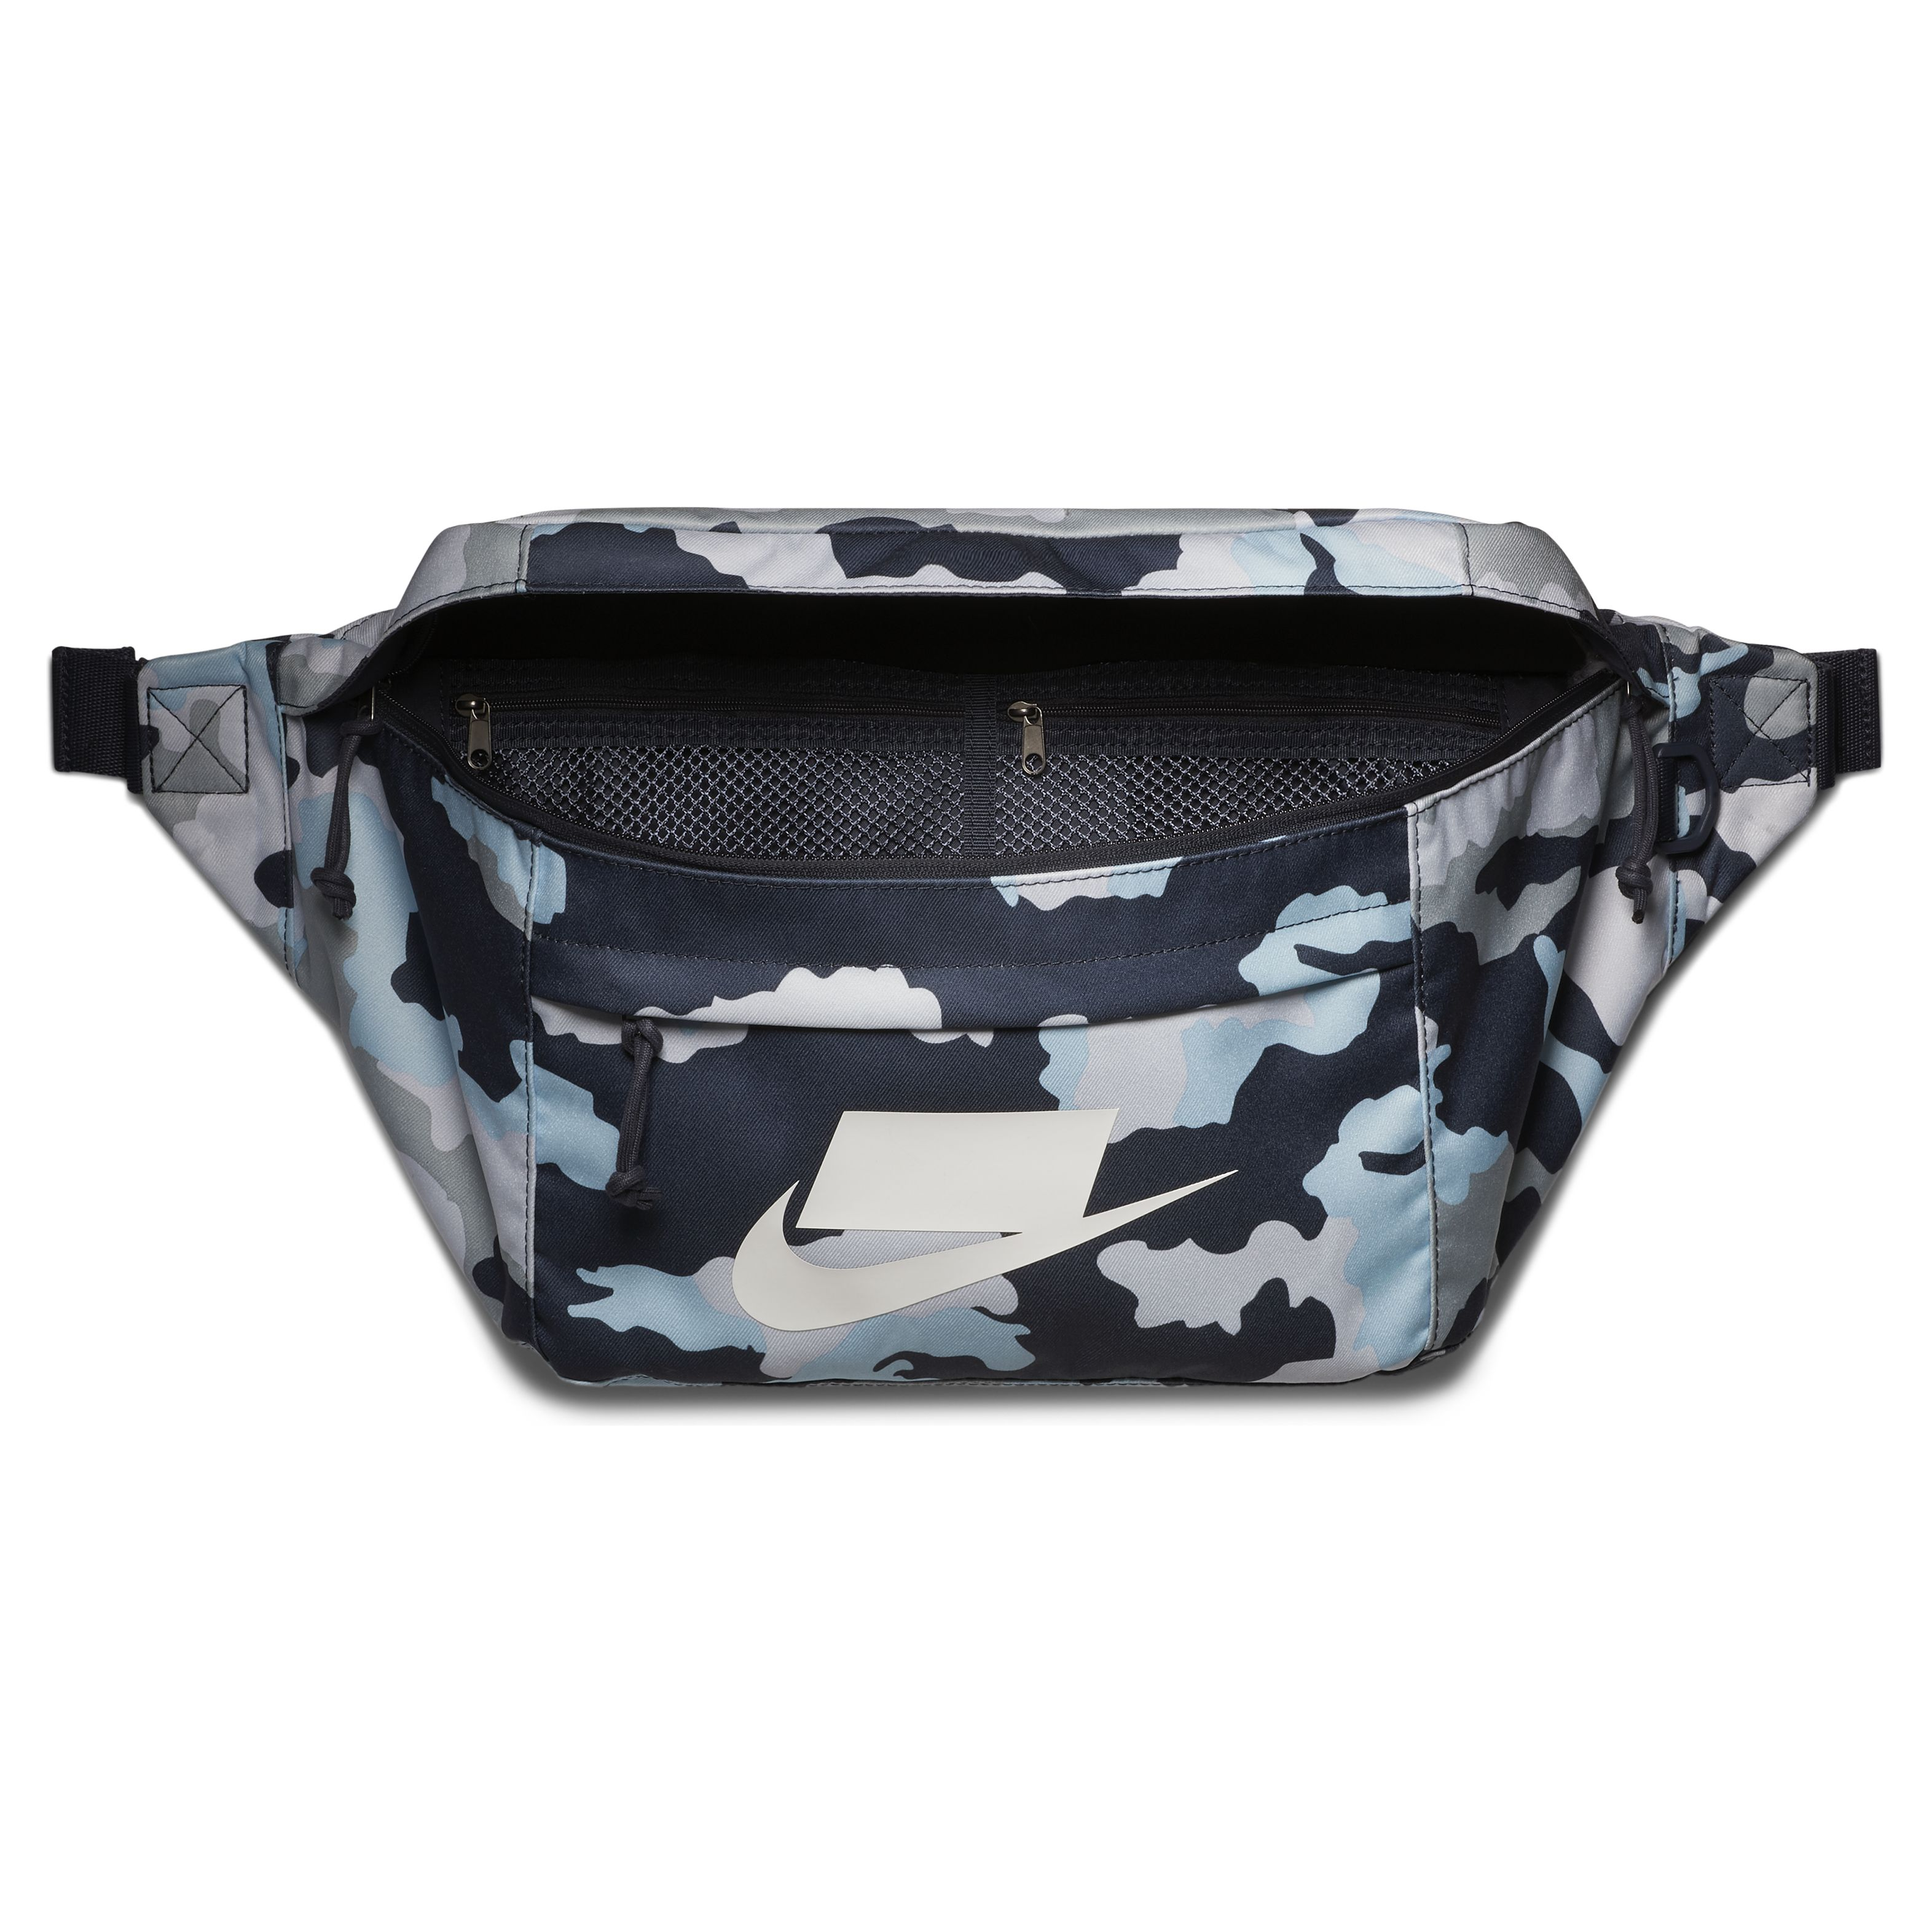 526f8a87 Сумка Nike Sportswear Tech Hip Pack All Over Printed Thunder Blue/Thunder  Blue/White